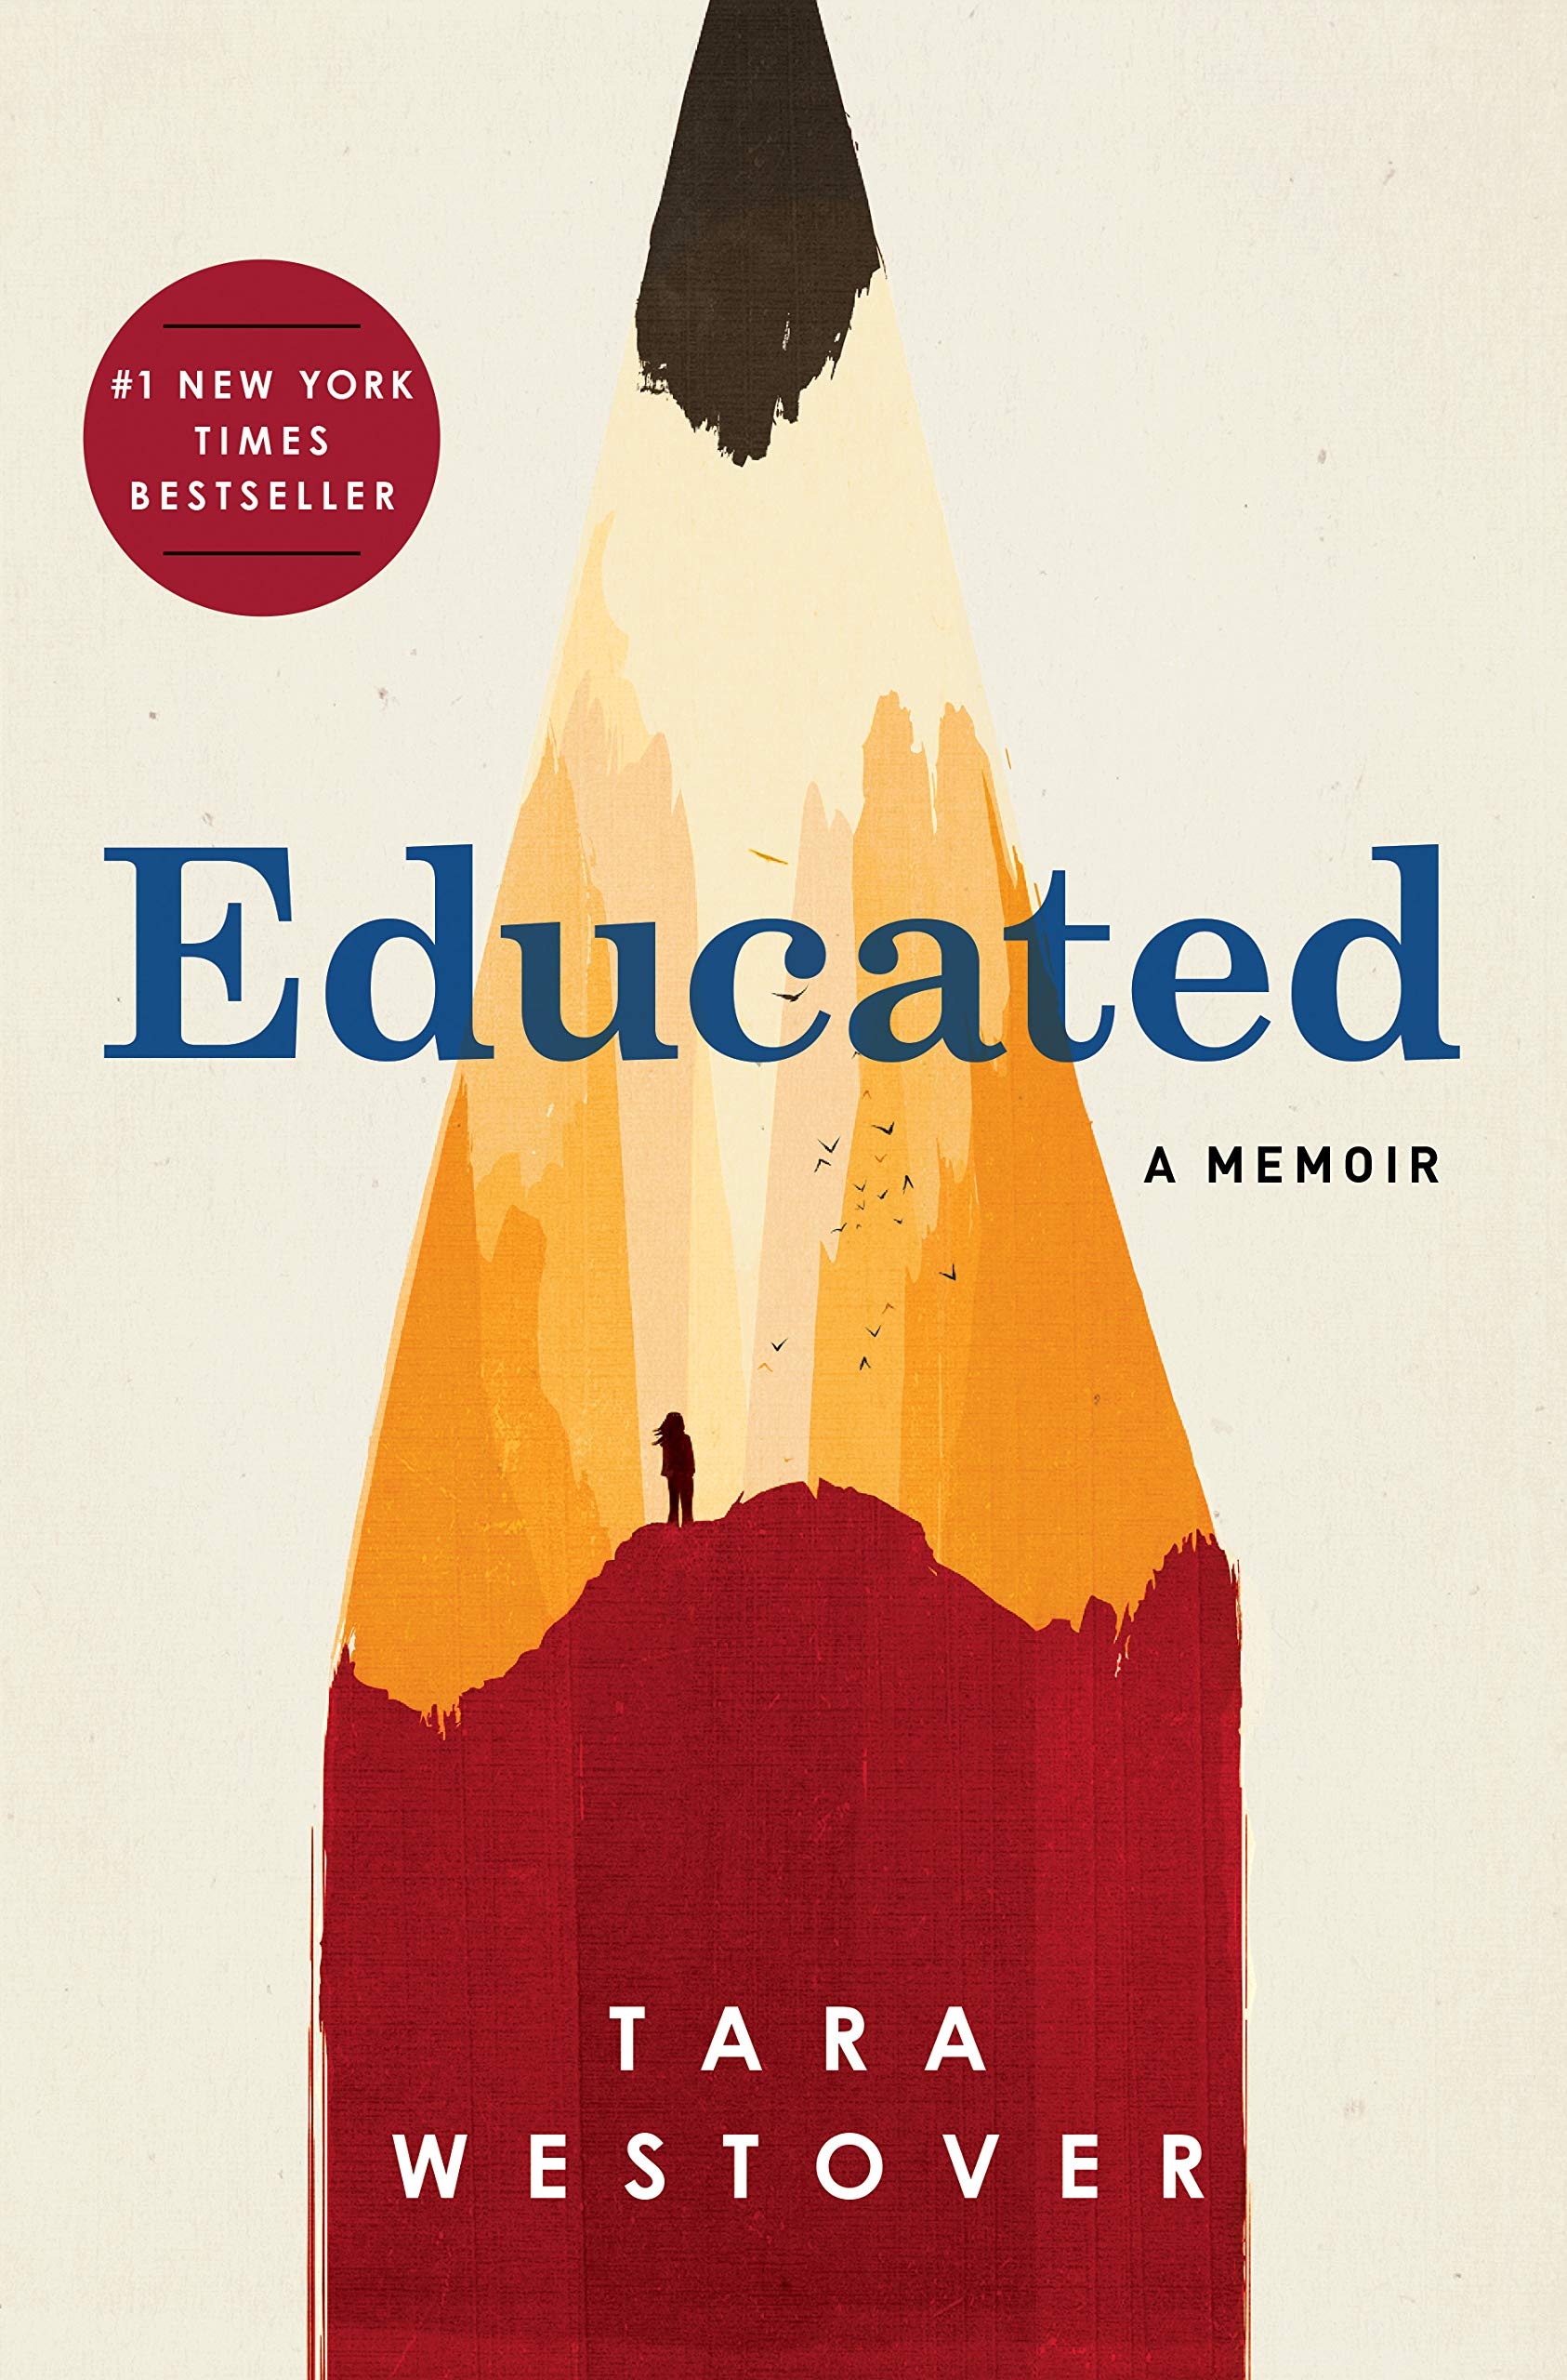 3) Educated - by Tara Westover